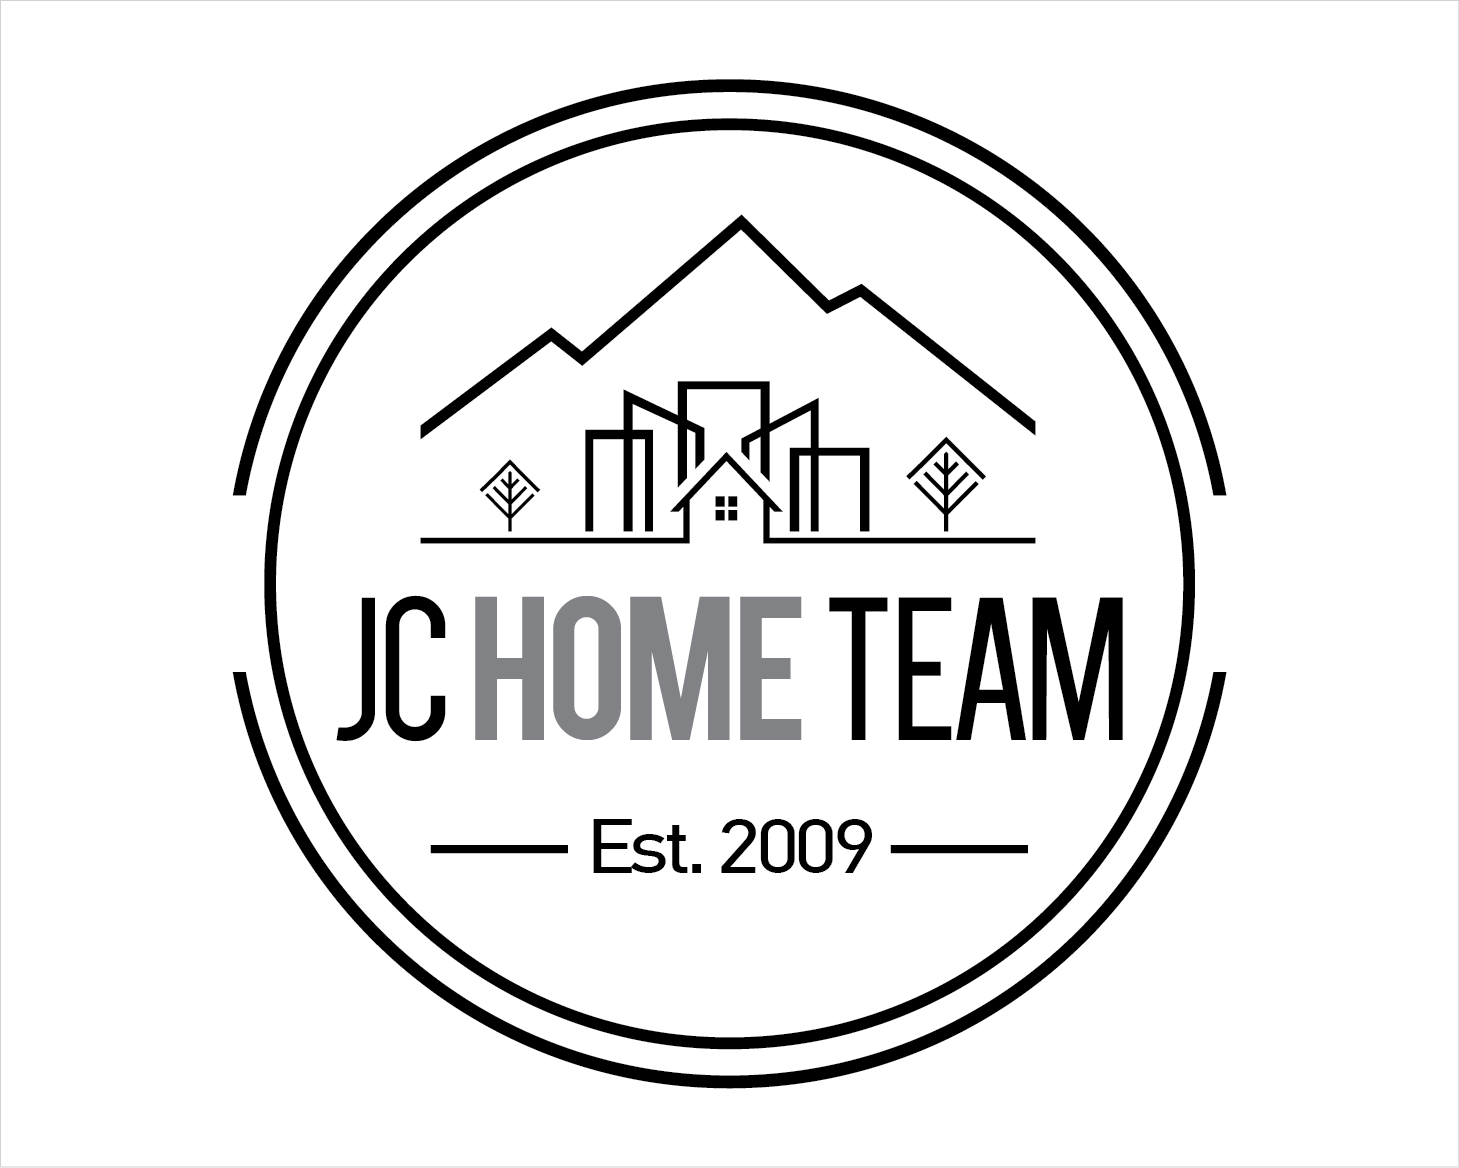 JC Home Team